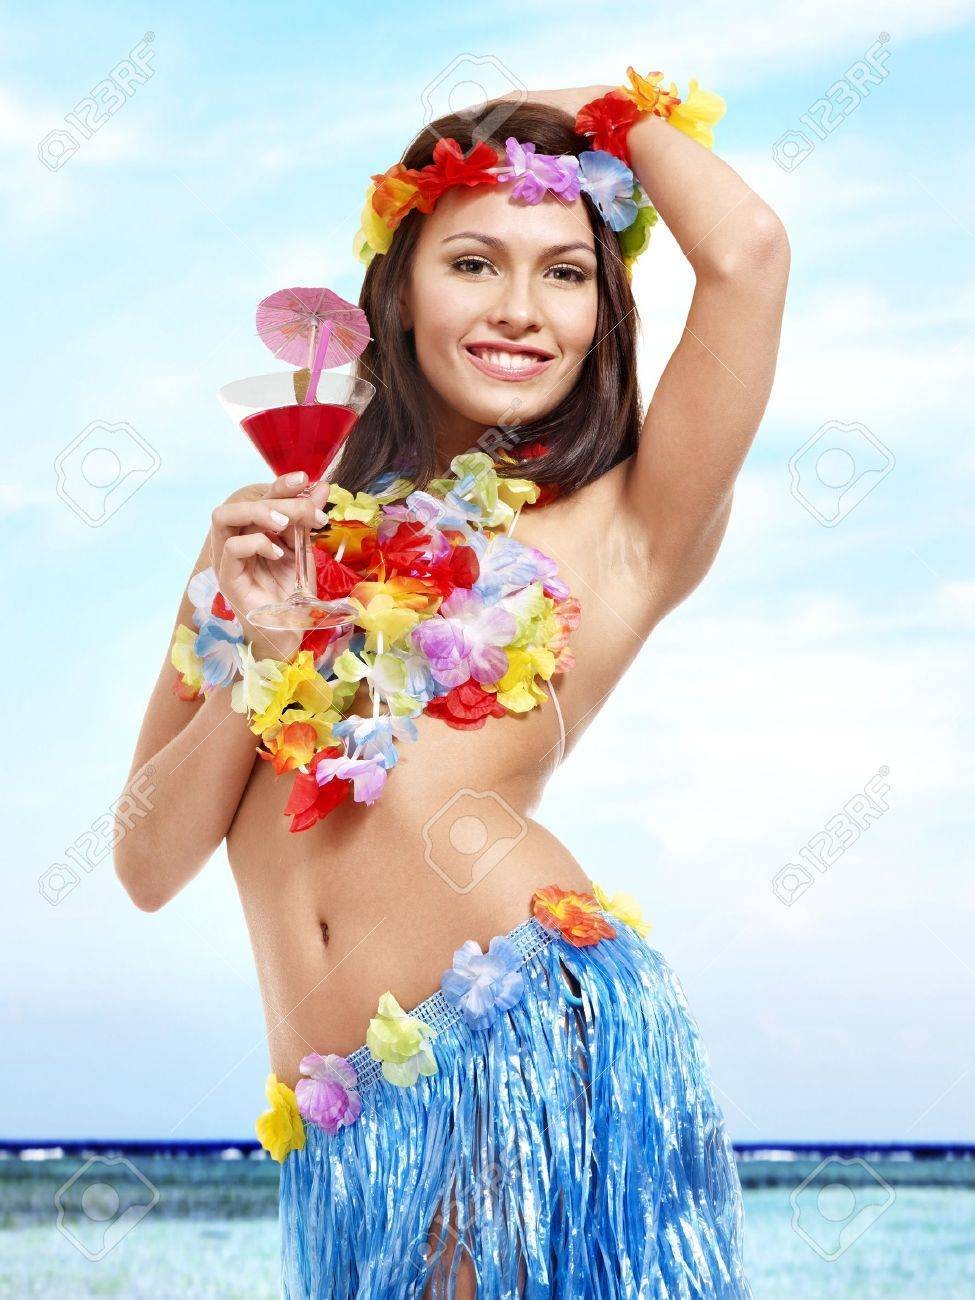 Young woman in hawaii costume drink  juice. Stock Photo - 17753871